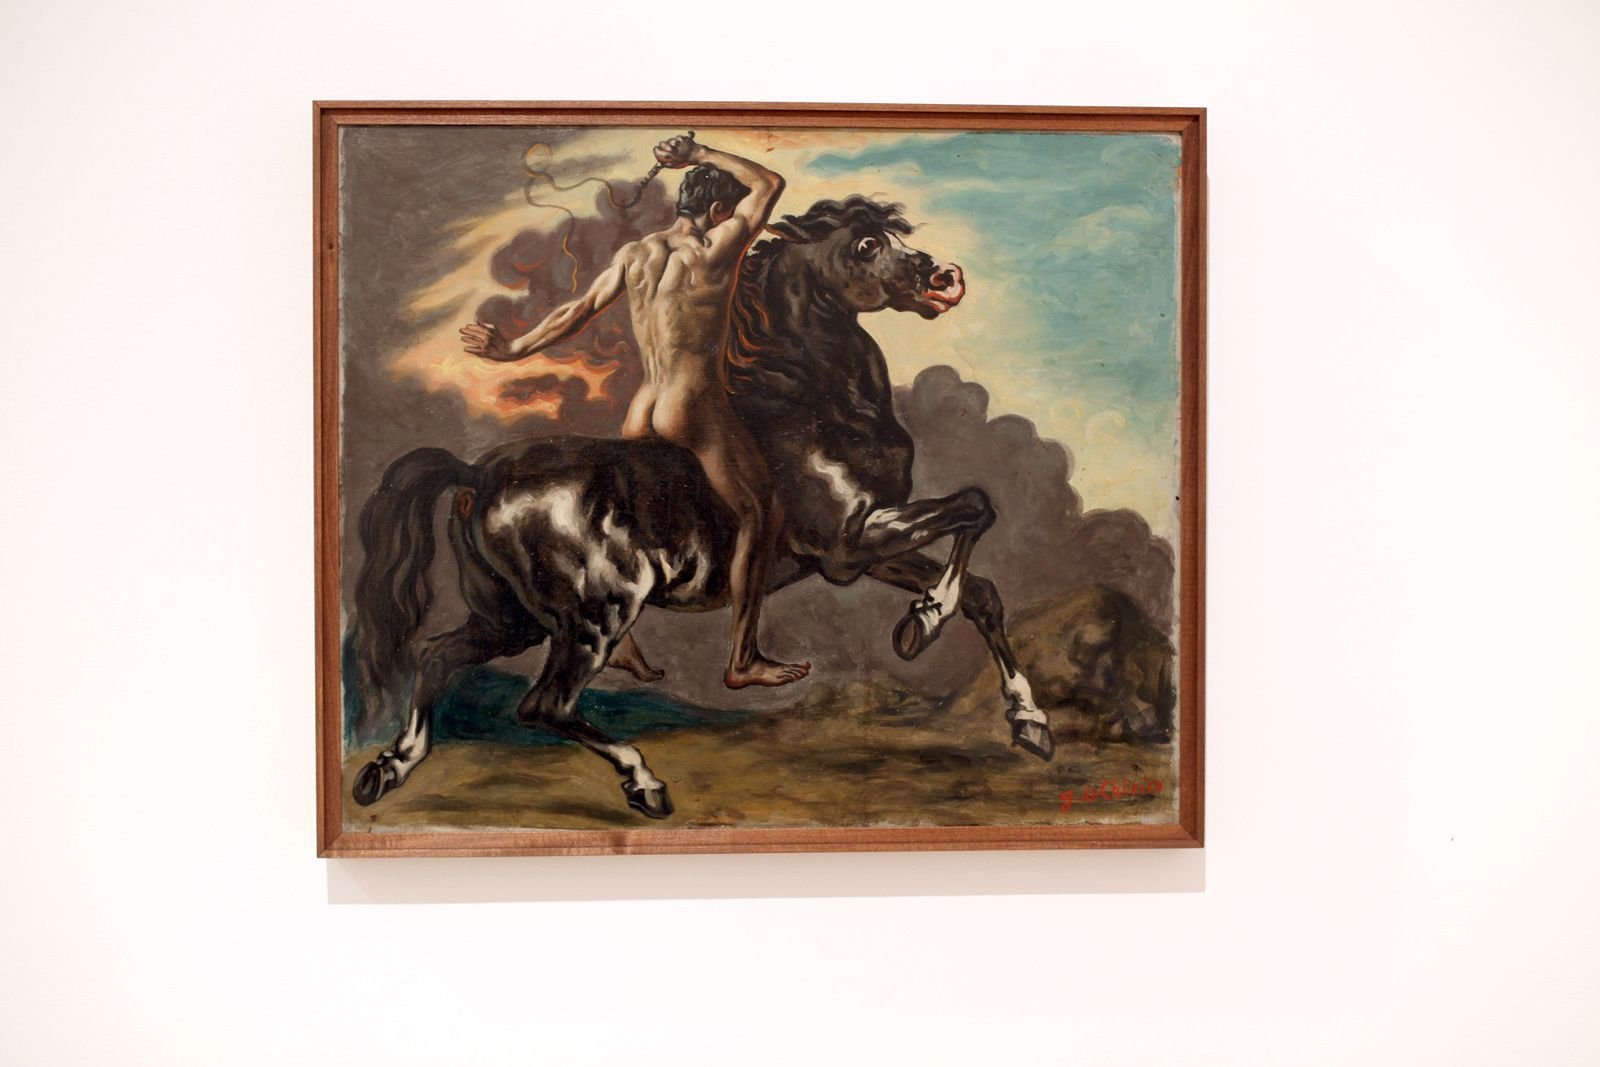 """Cavallo e cavaliere"", 1929 de Giorgio DE CHIRICO - Courtesy Galerie Tornabuoni Art Paris © Photo Éric Simon"